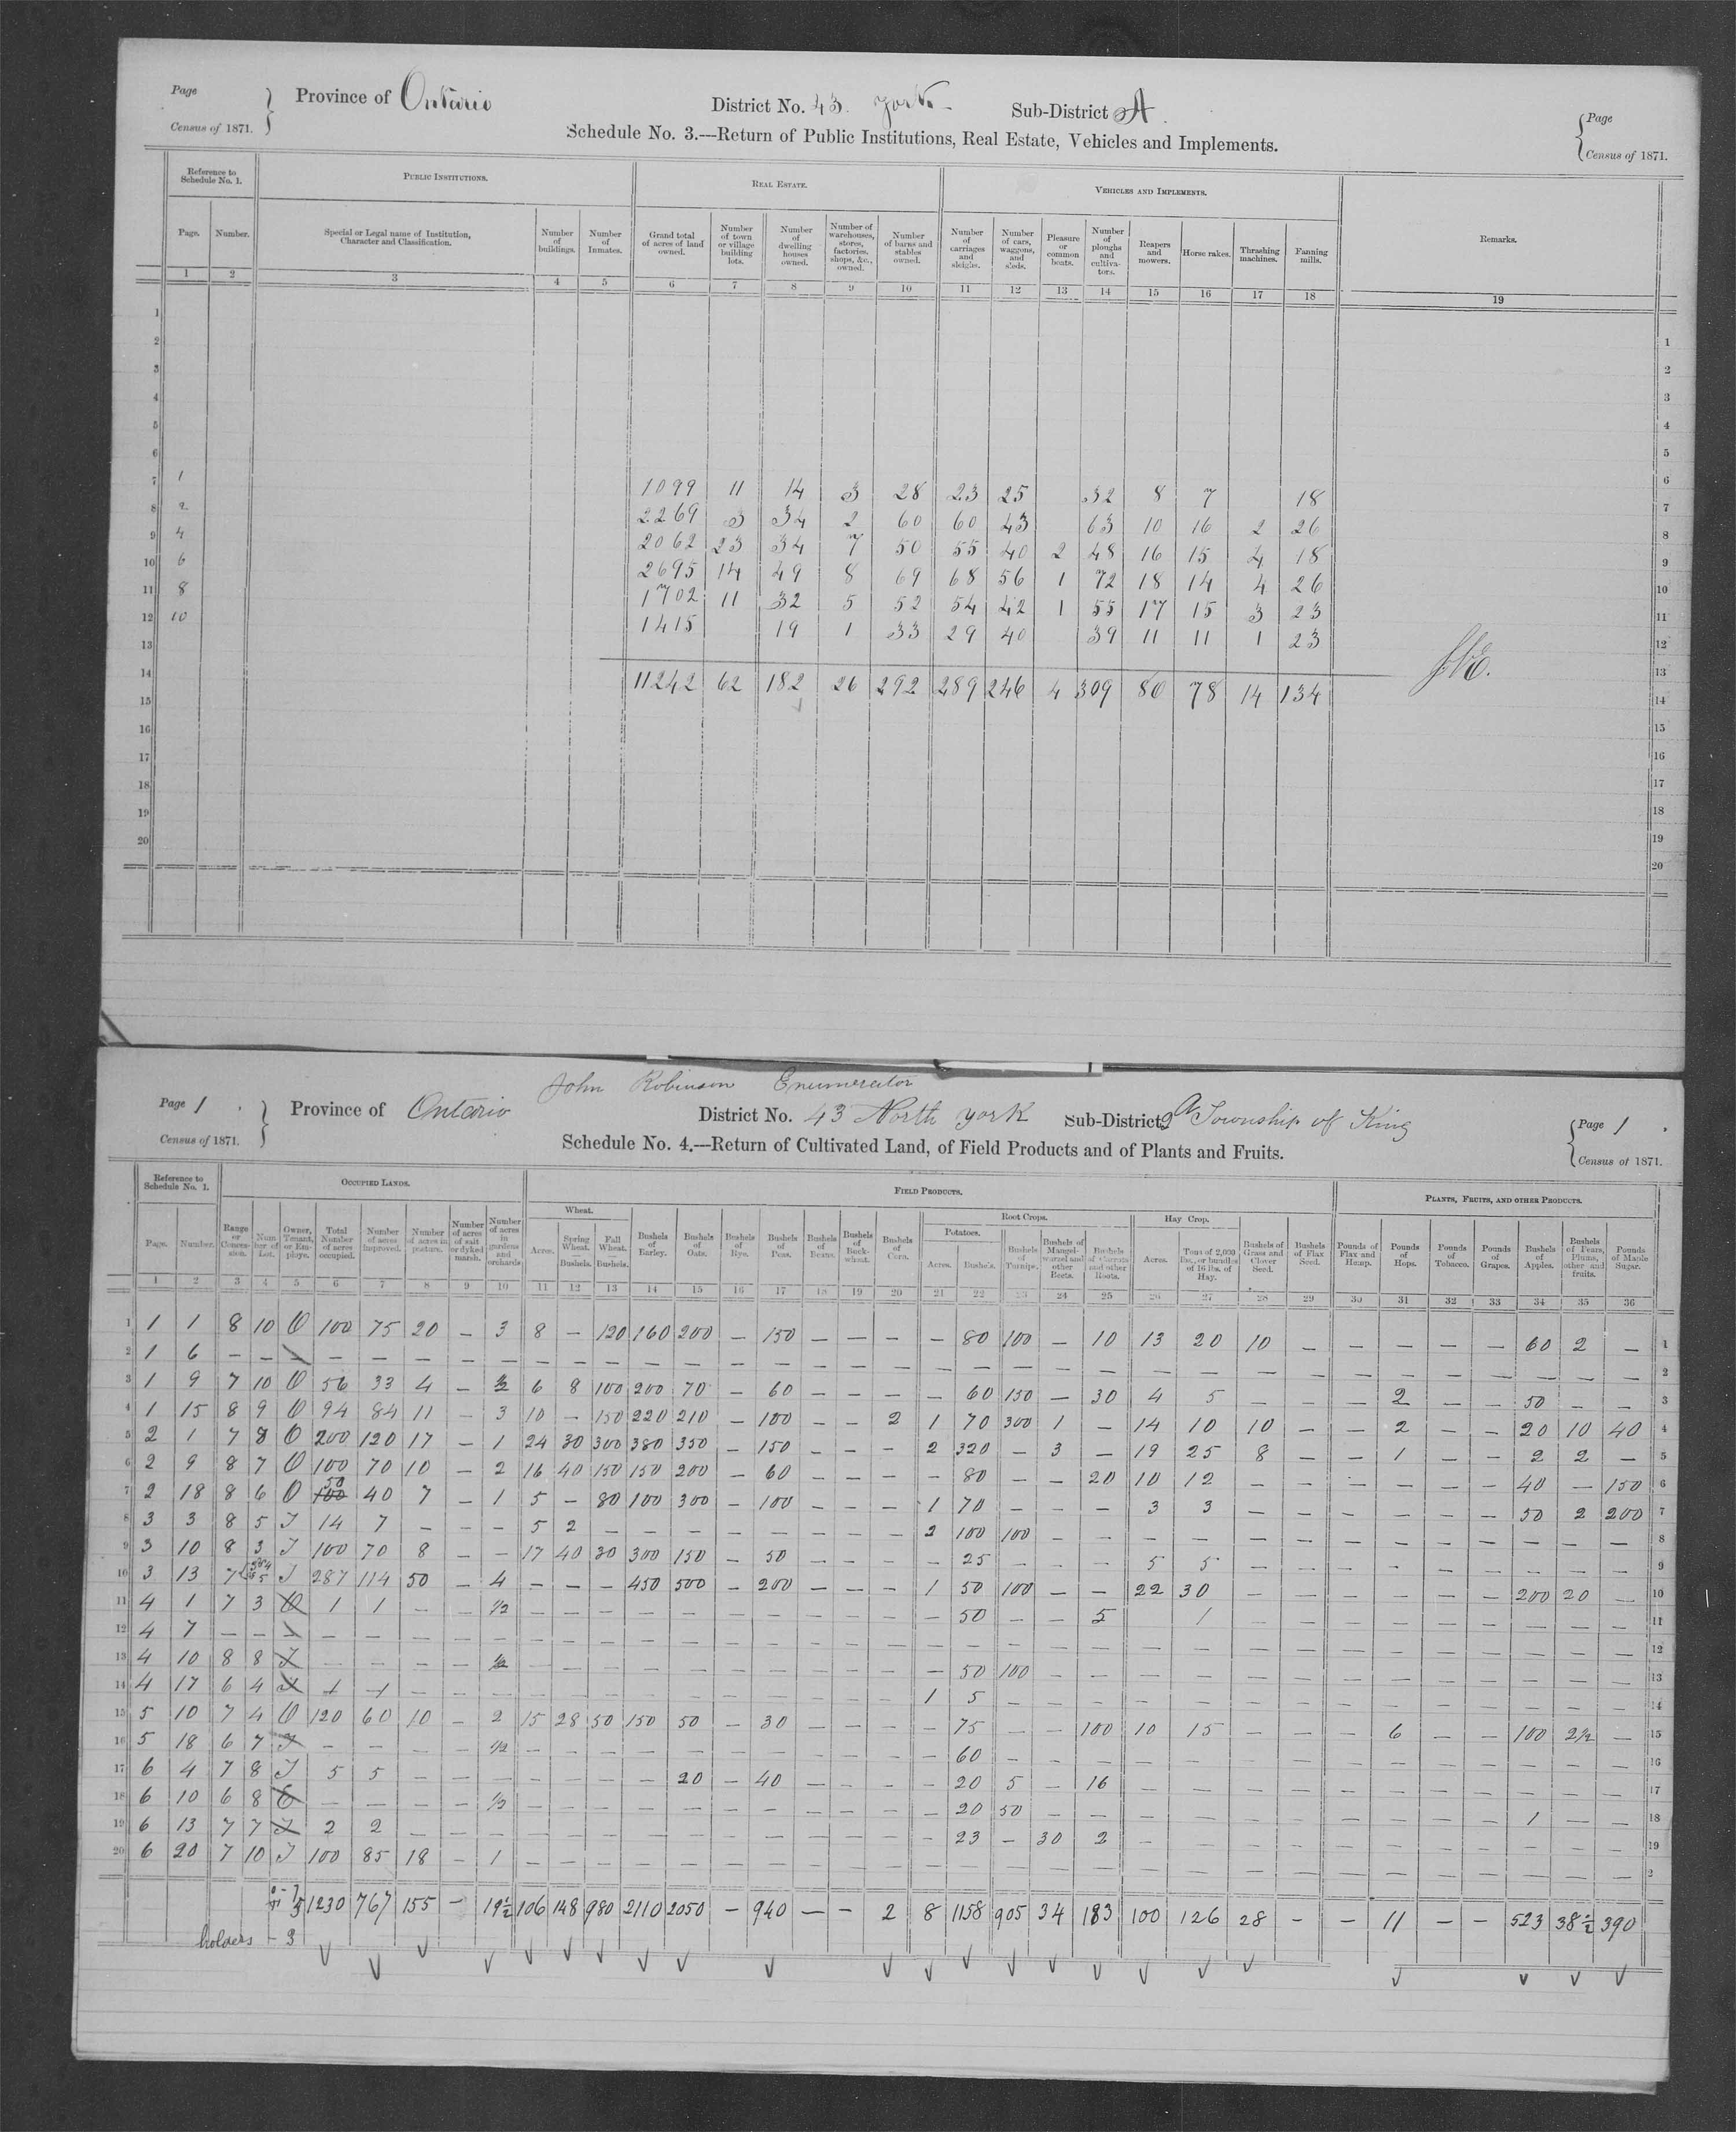 Title: Census of Canada, 1871 - Mikan Number: 142105 - Microform: c-9964